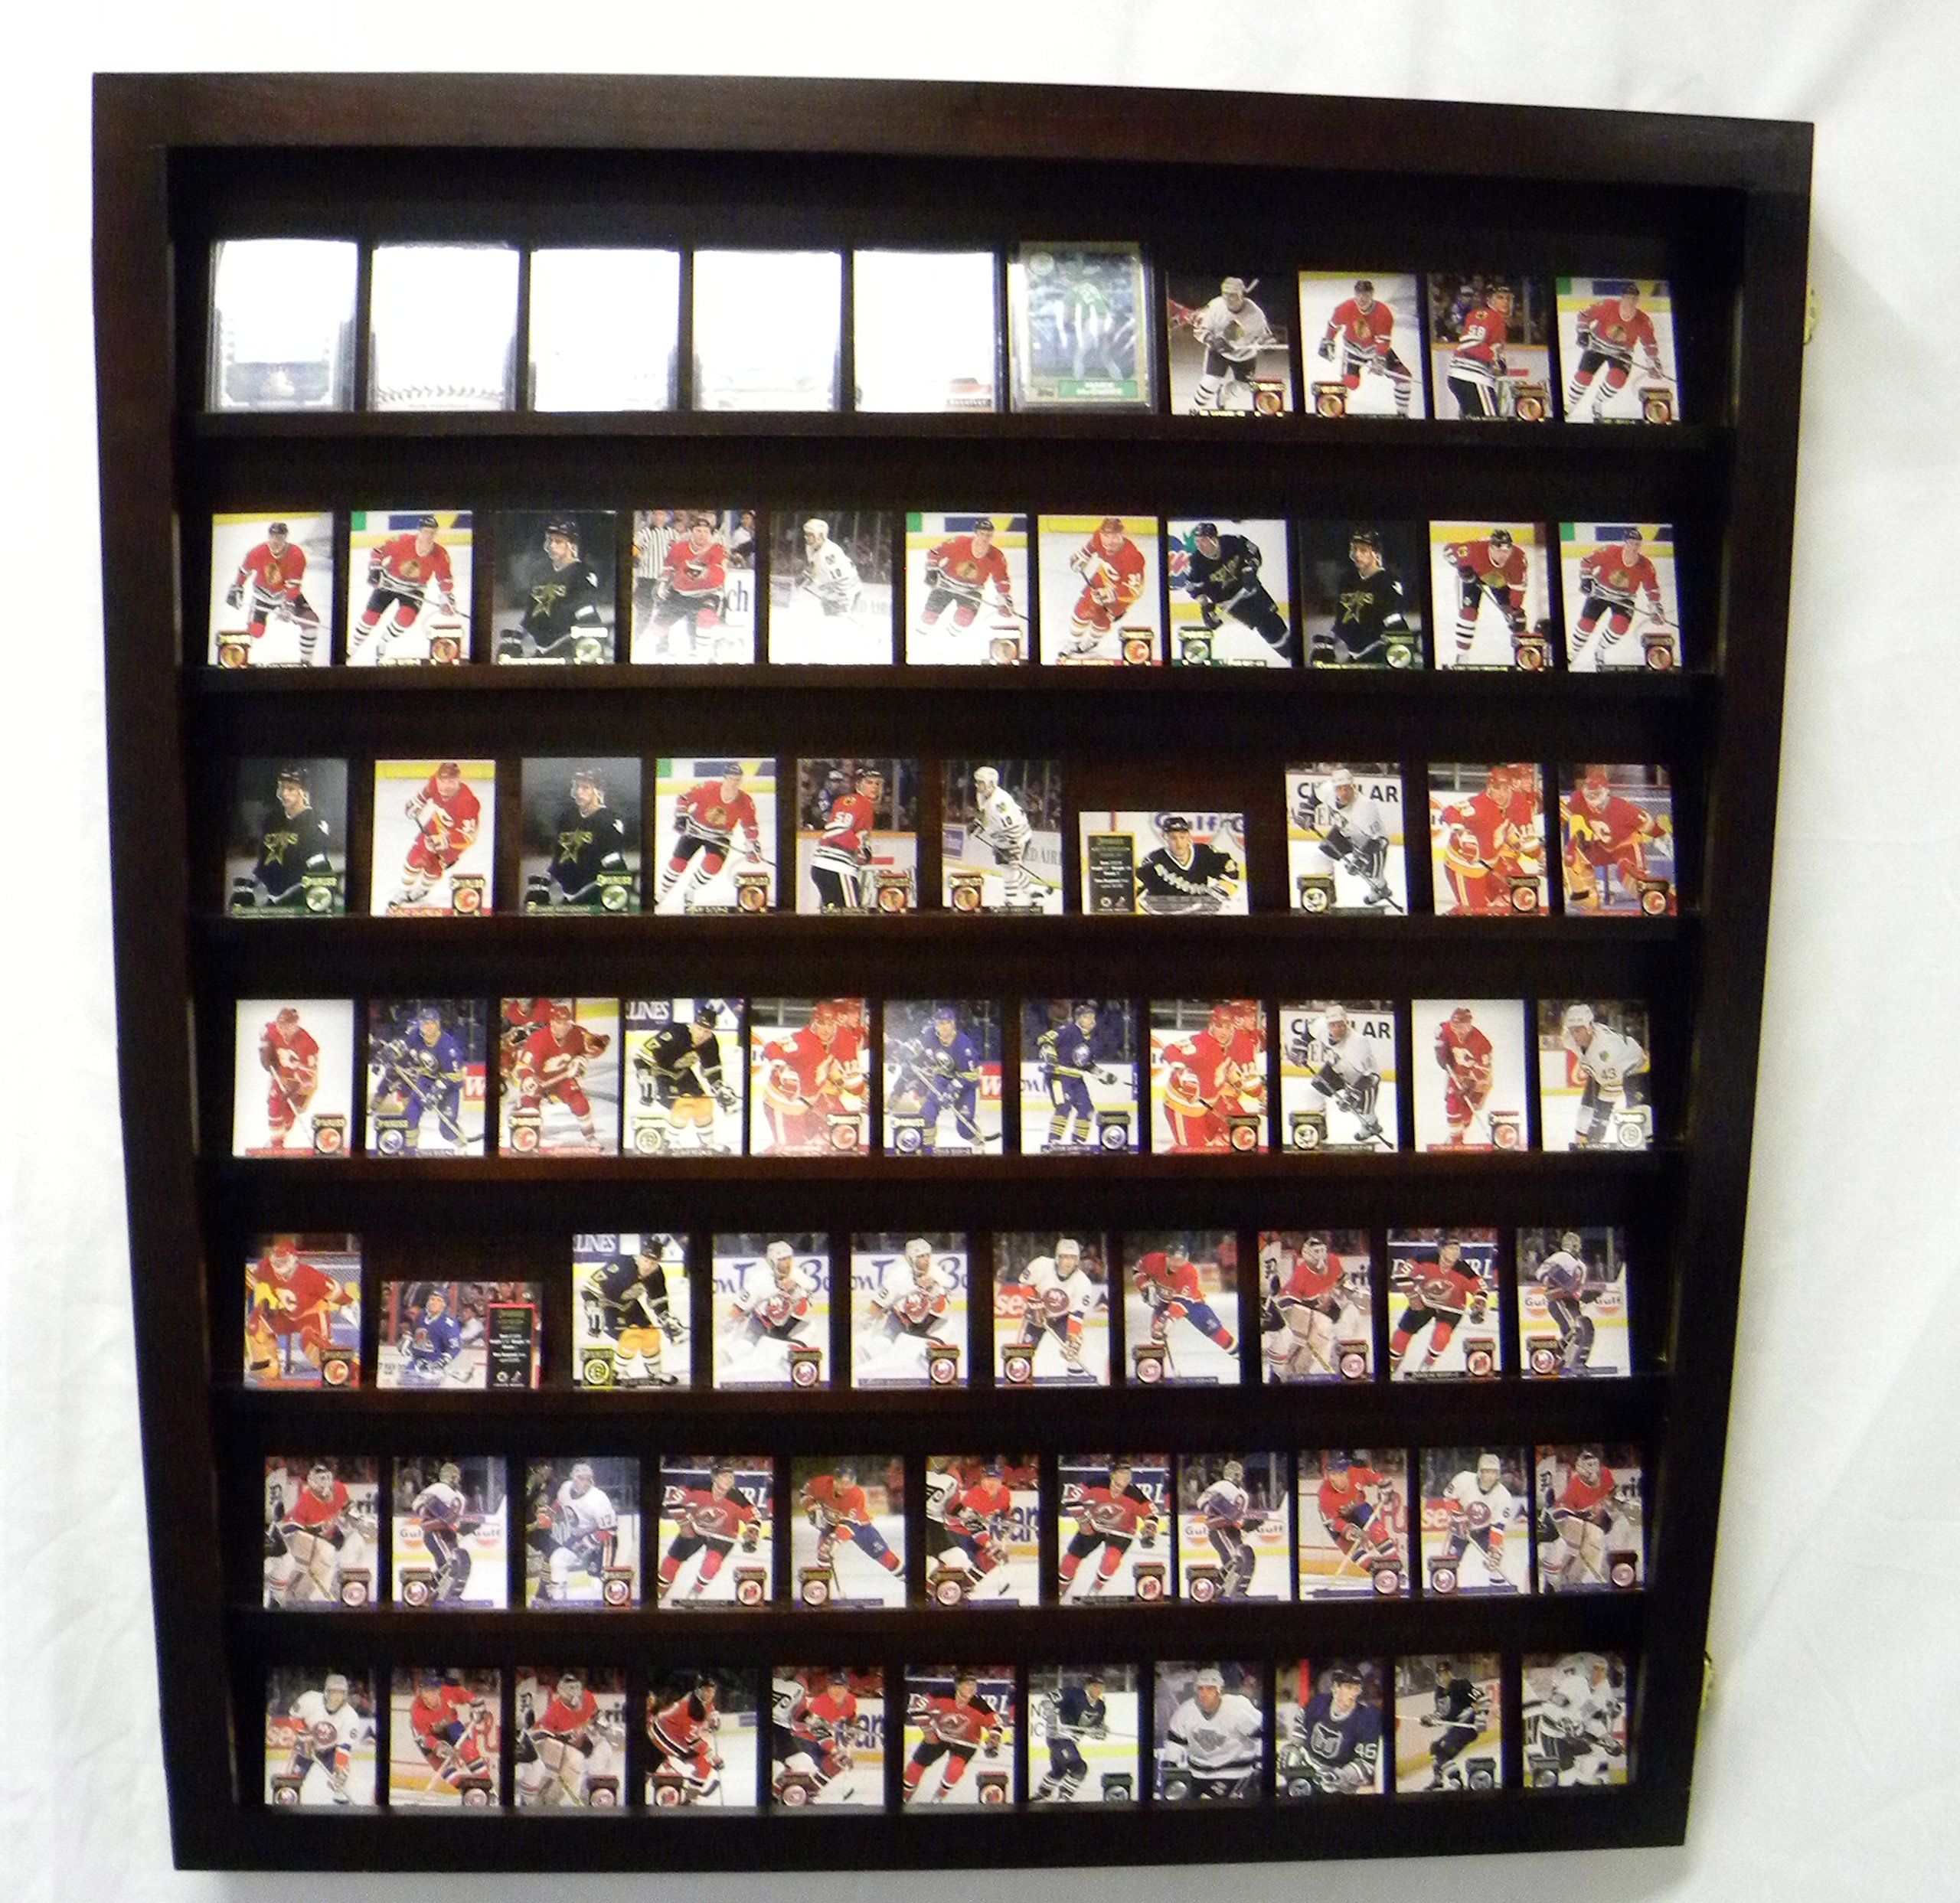 Card Deck Display Case for Decks of Cards/Playing Card Deck Display Case (Cherry) by Pennzoni Display (Image #6)